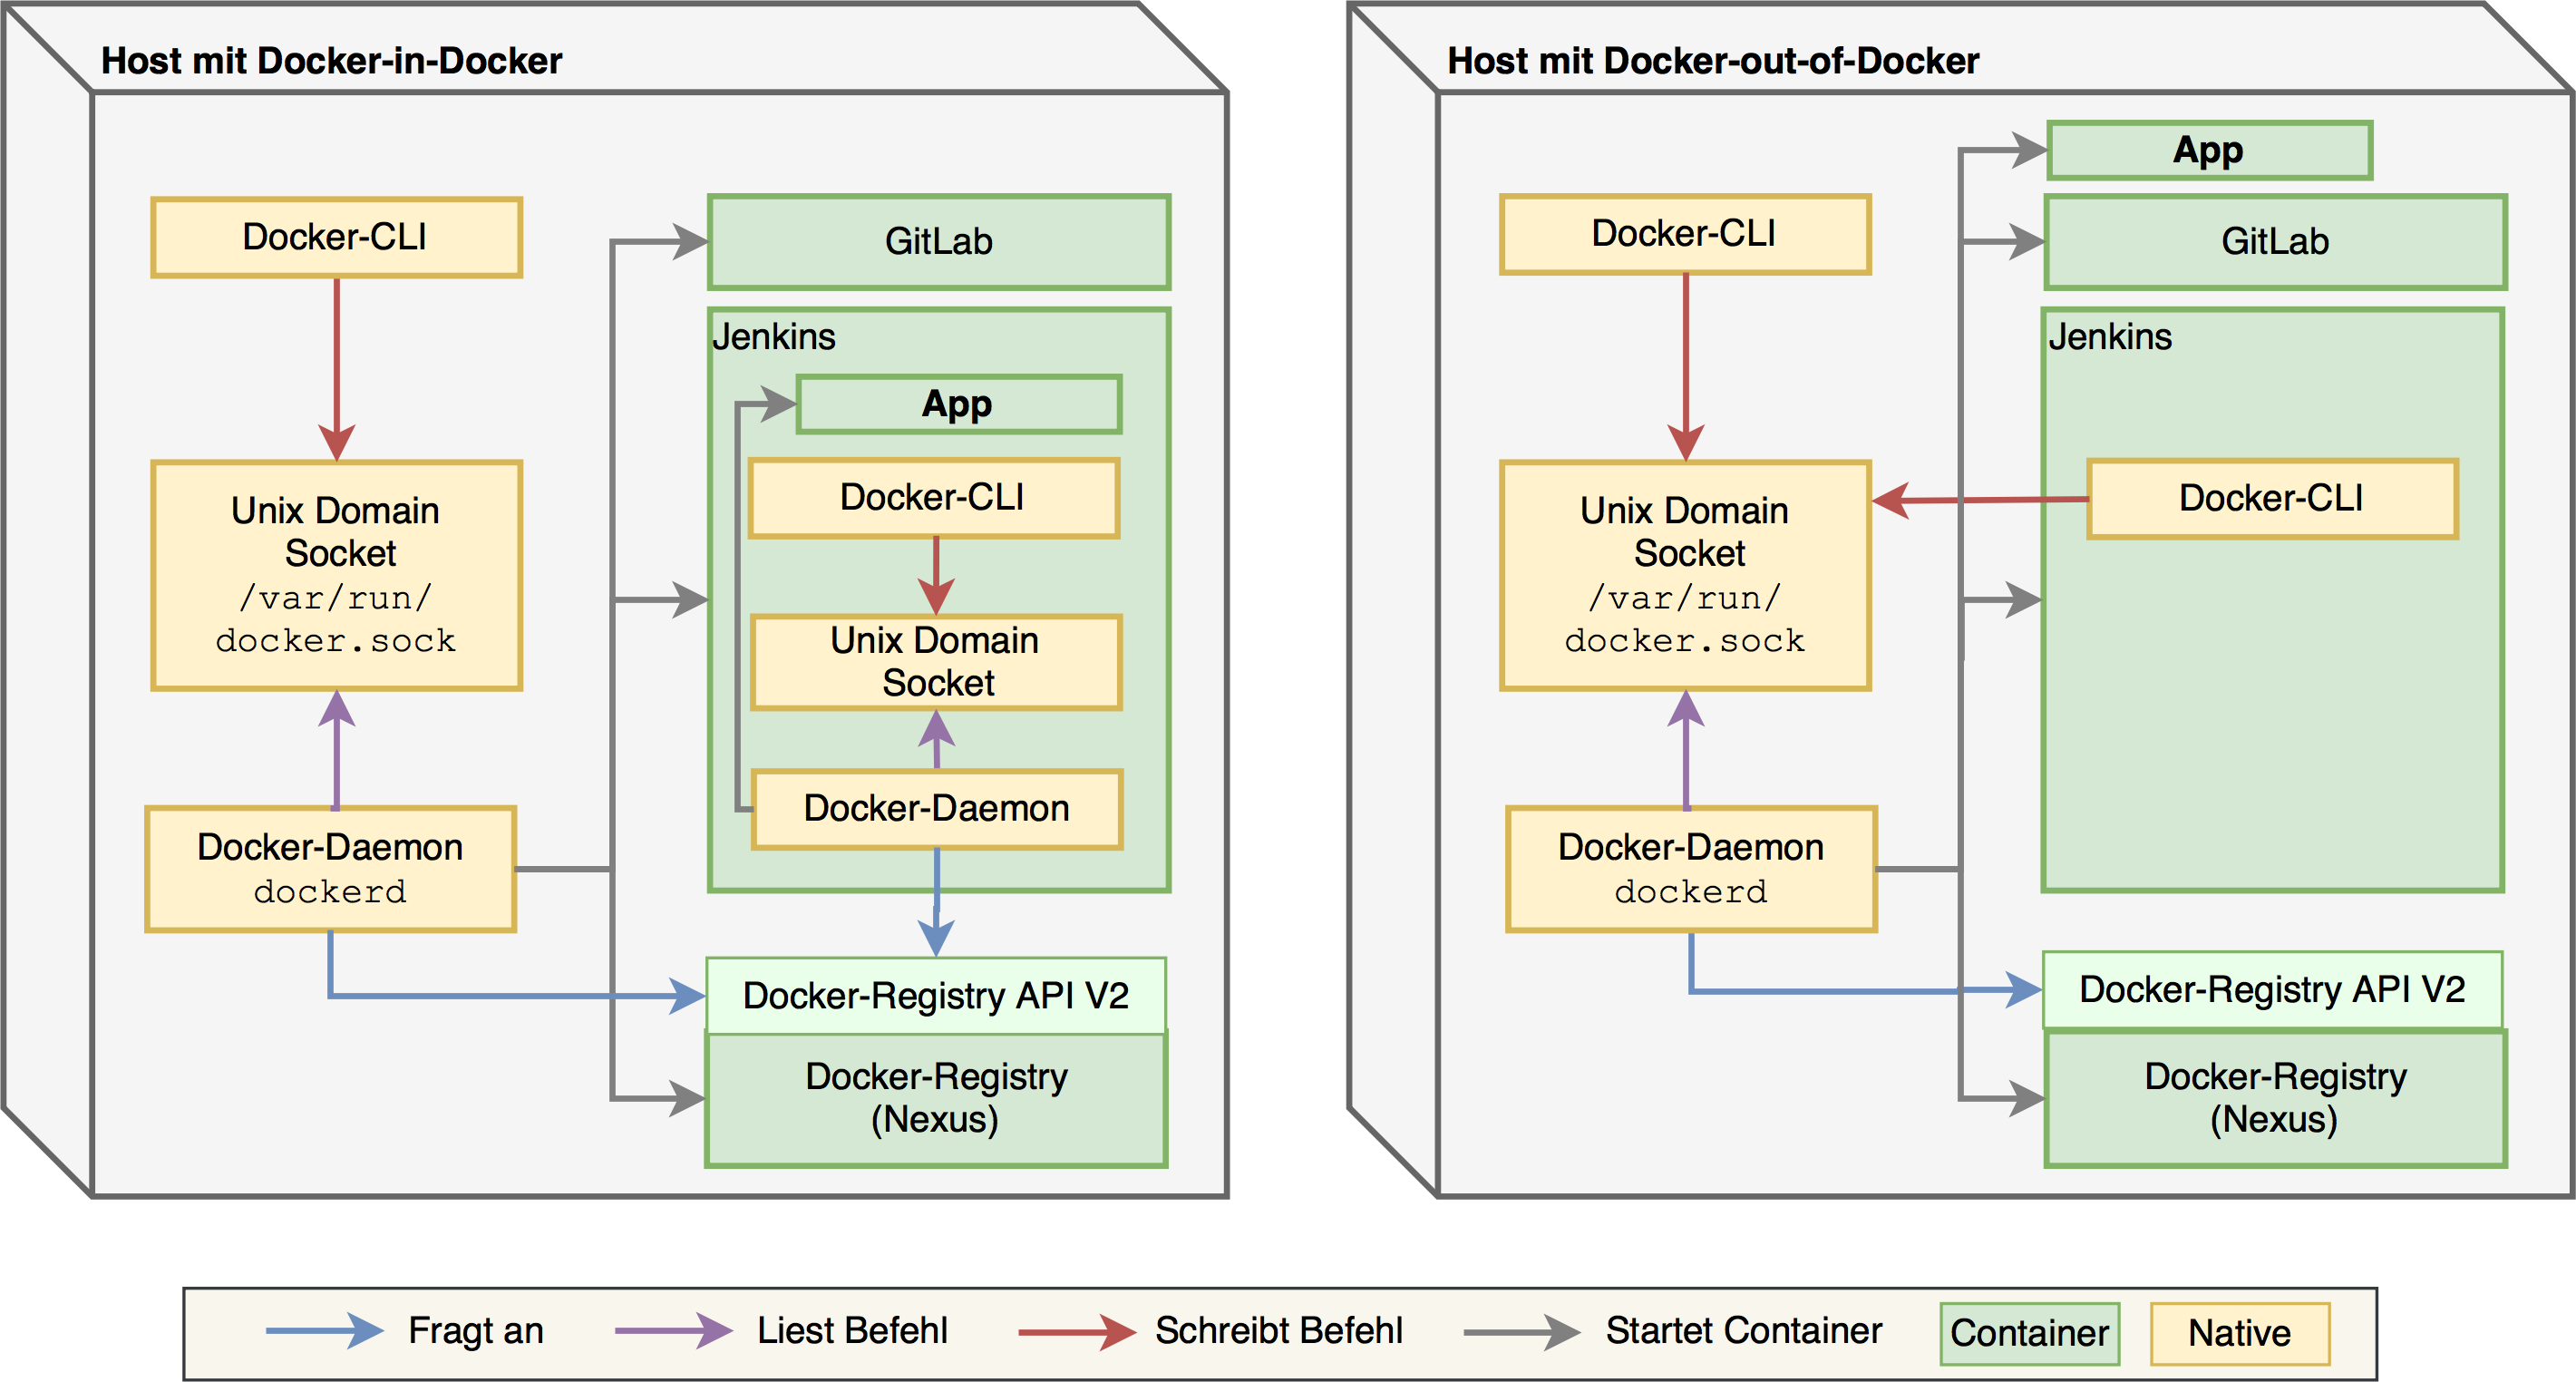 Unterschiede-Software-Docker-in-Docker-Docker-out-of-docker.png